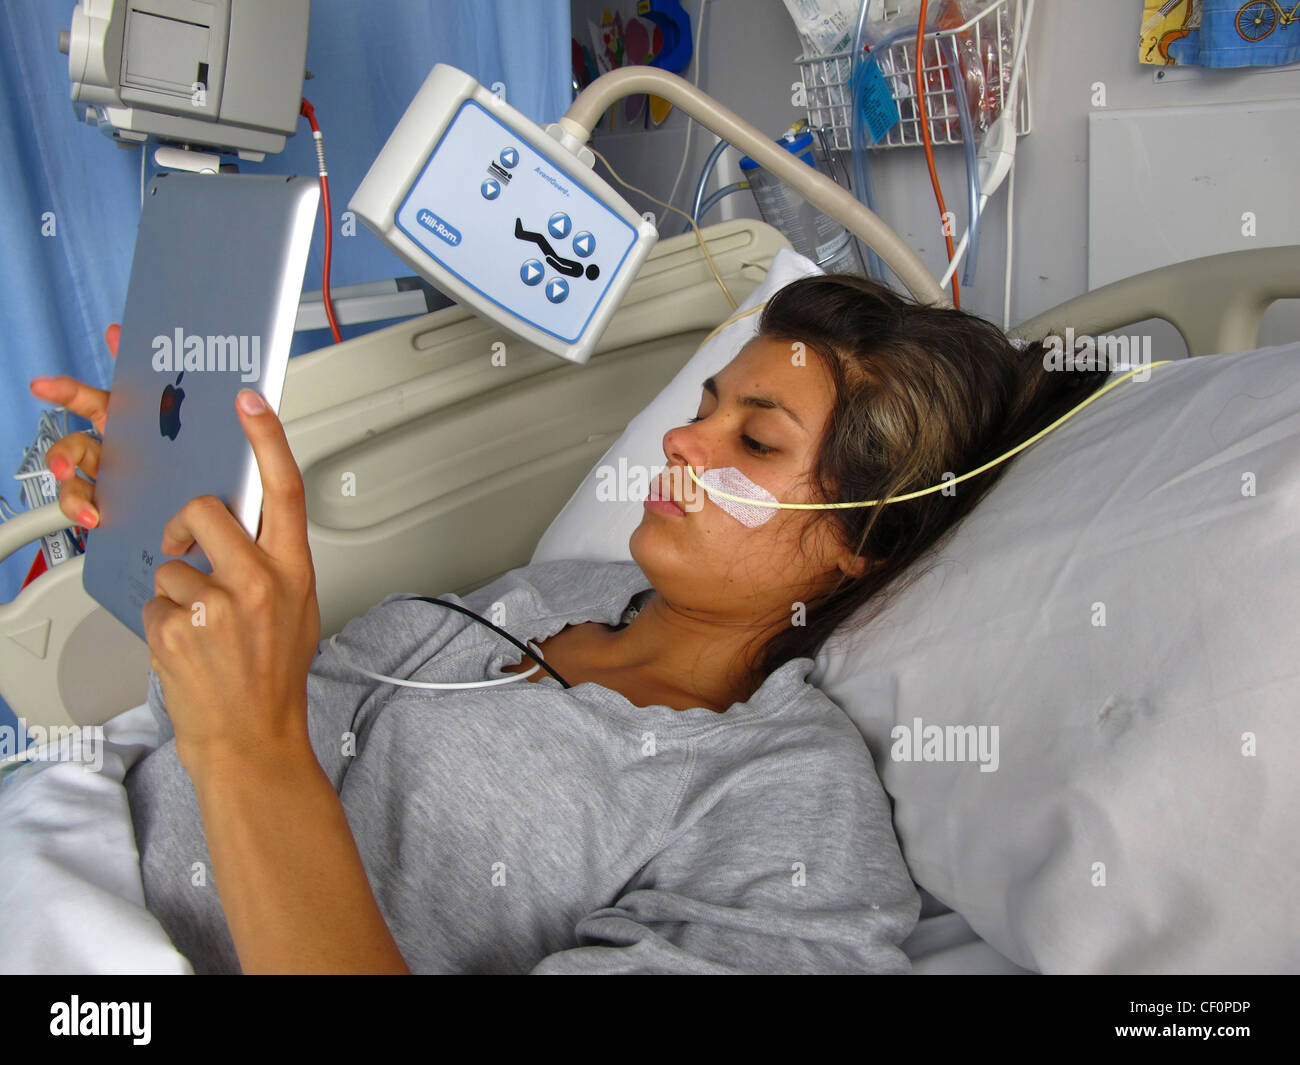 A Young Girl In Hospital With Anorexia Using An IPad